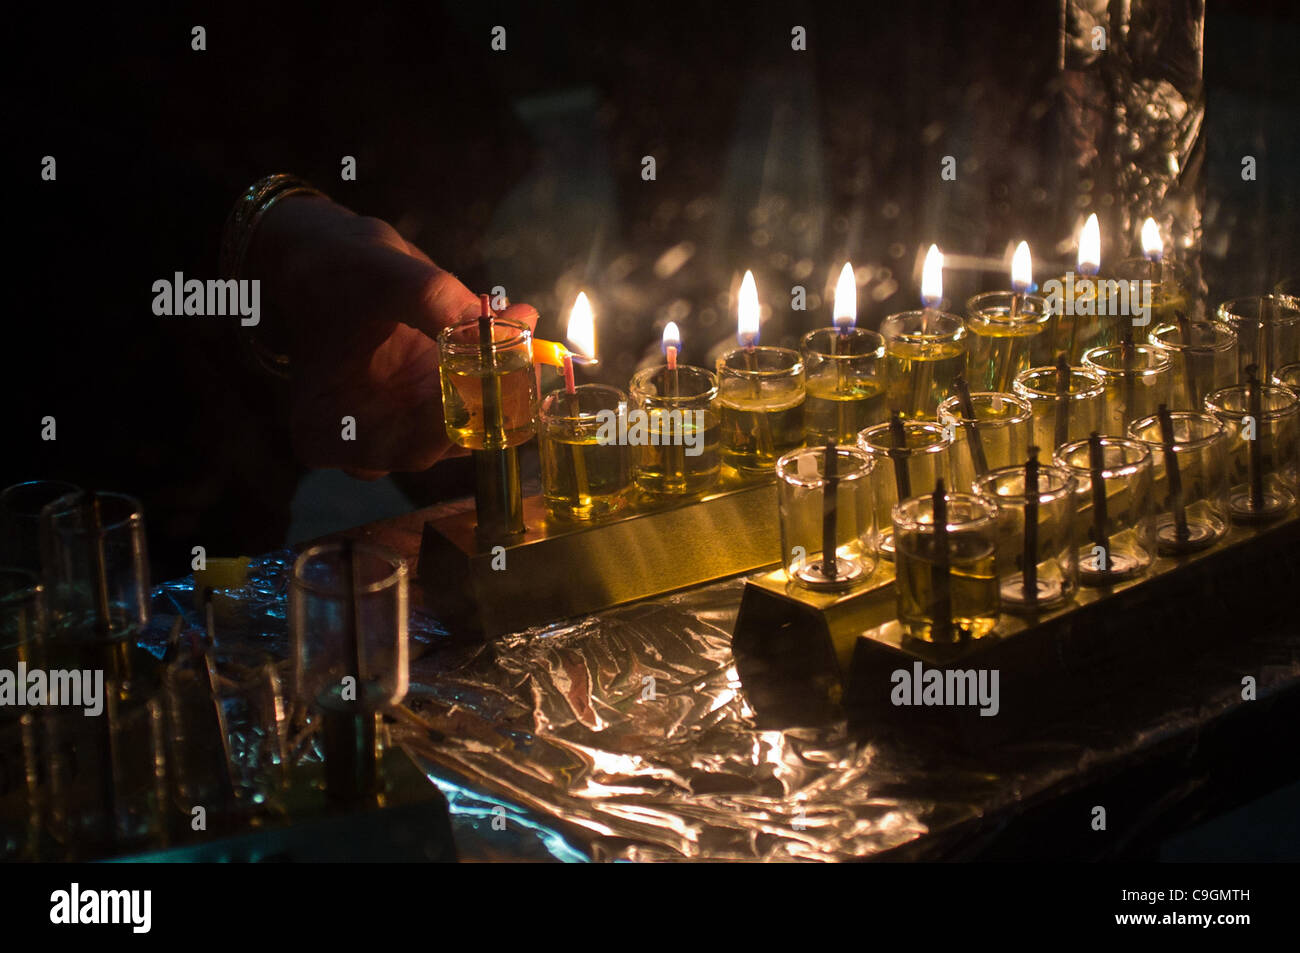 Young ladies light a chanukkiah, an eight-branched menorah, on the eight and last night of the holiday of Chanukah. - Stock Image